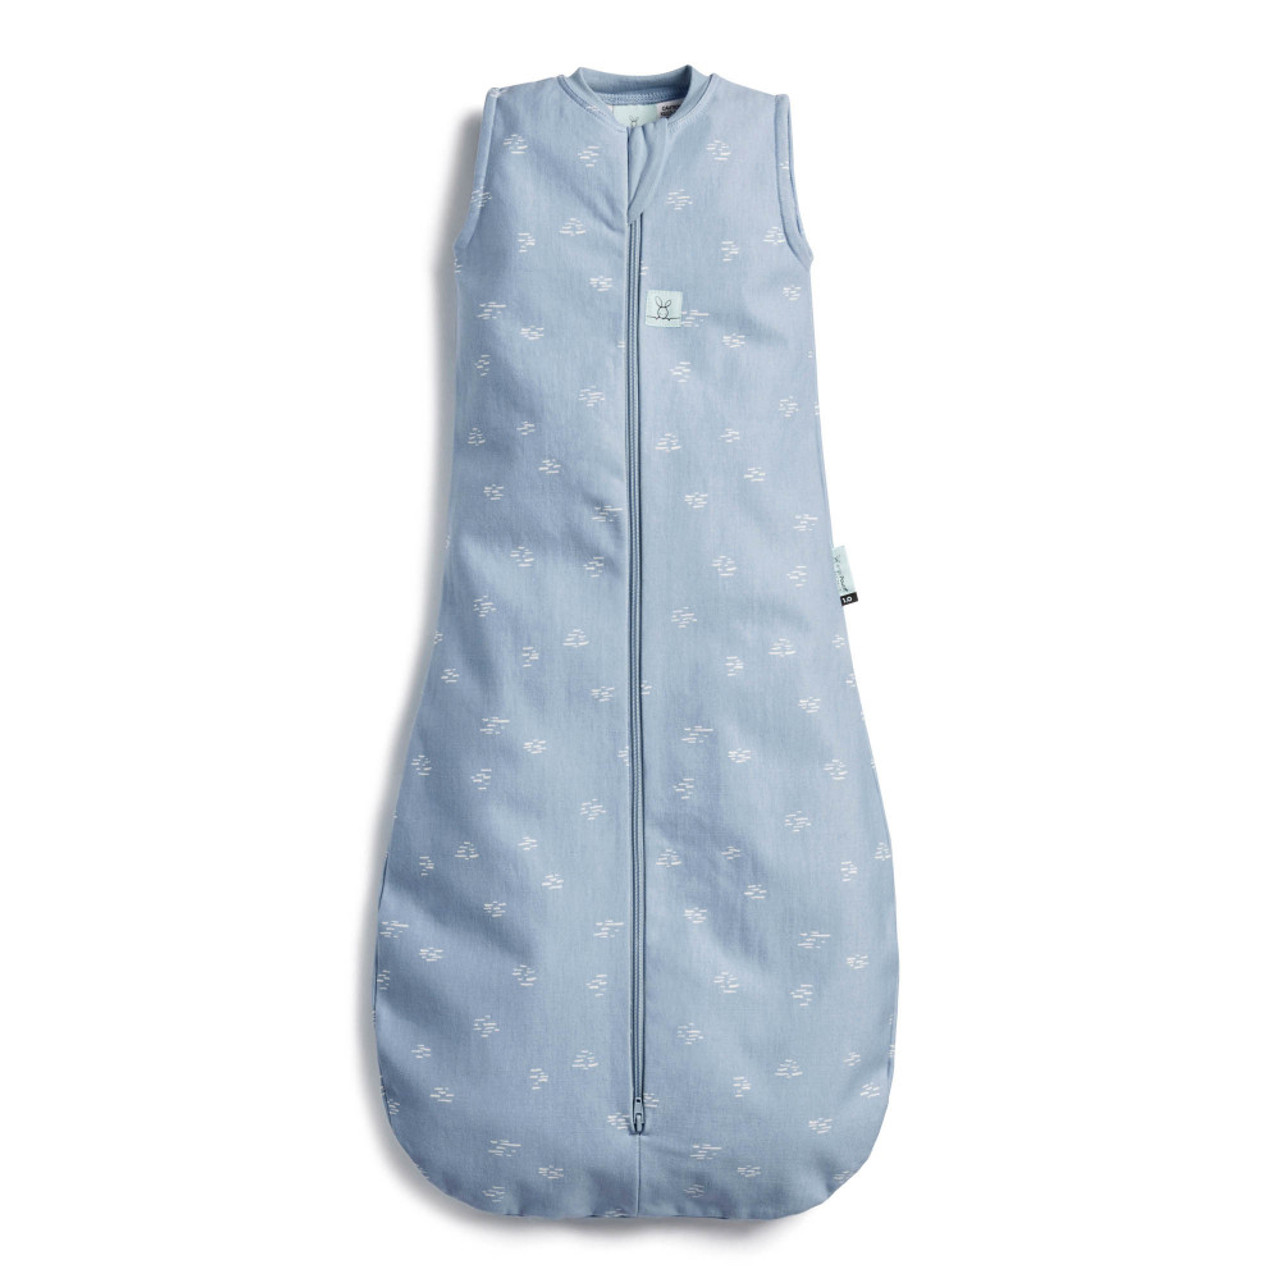 ergoPouch Jersey Sleeping Bag 1.0Tog 8-24 Months RIPPLE at Baby Barn Discounts